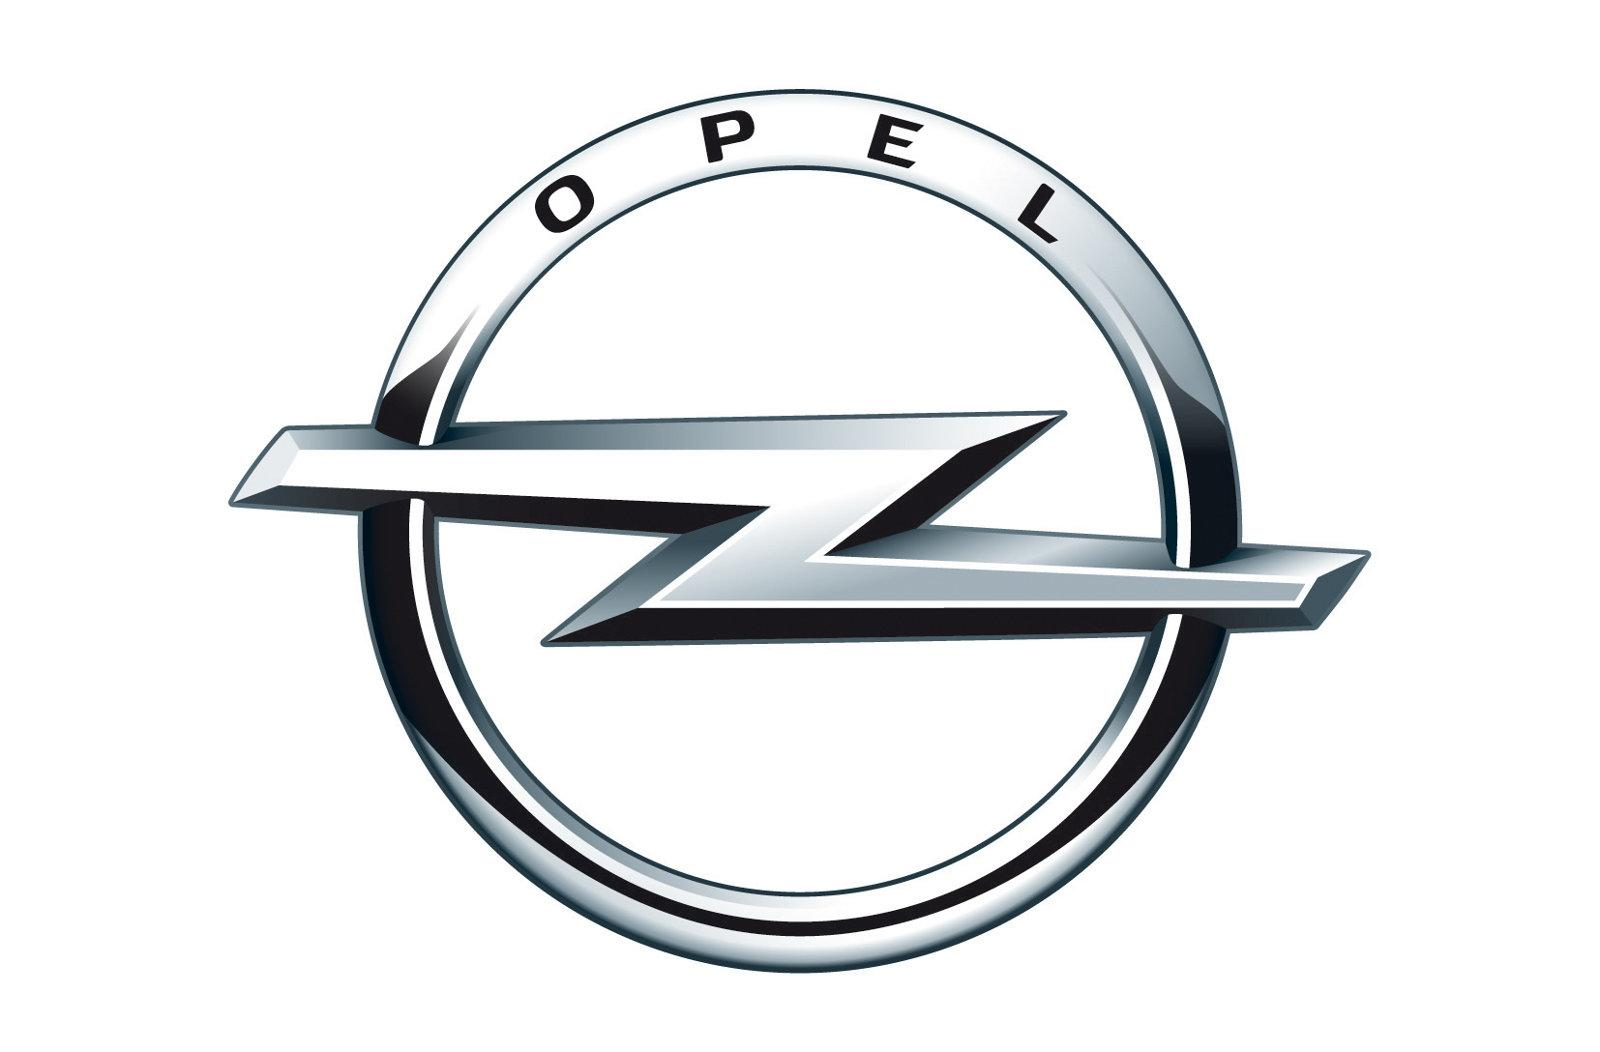 Opel logo opel car symbol and history car brand names opel company logo biocorpaavc Image collections